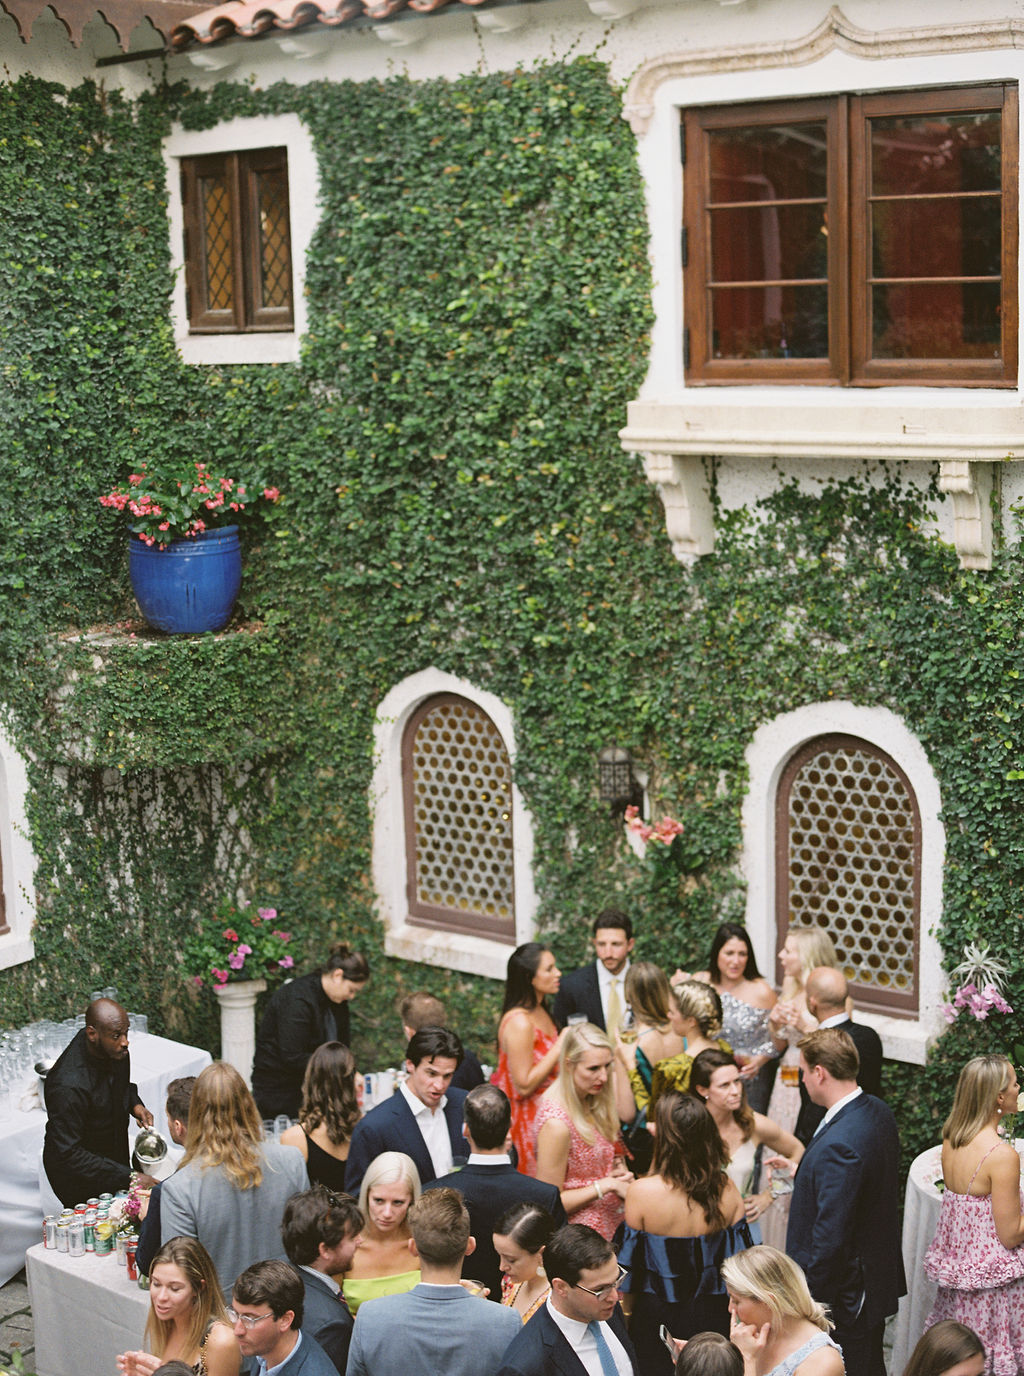 guests socializing during cocktail hour by house with vining wall